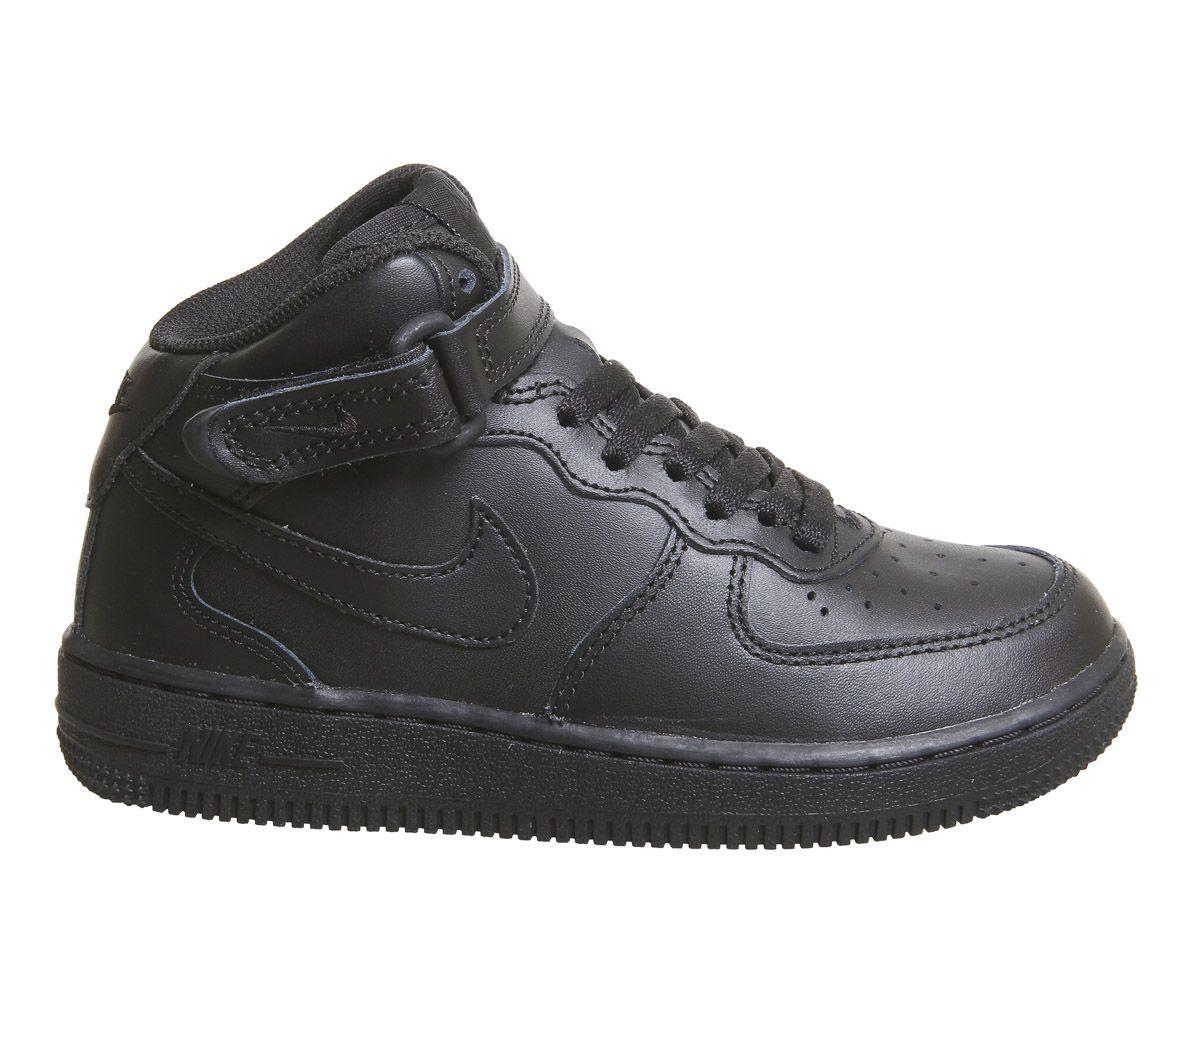 official photos dafbe d359f Men's Black Af1 Mid Ps Sneakers